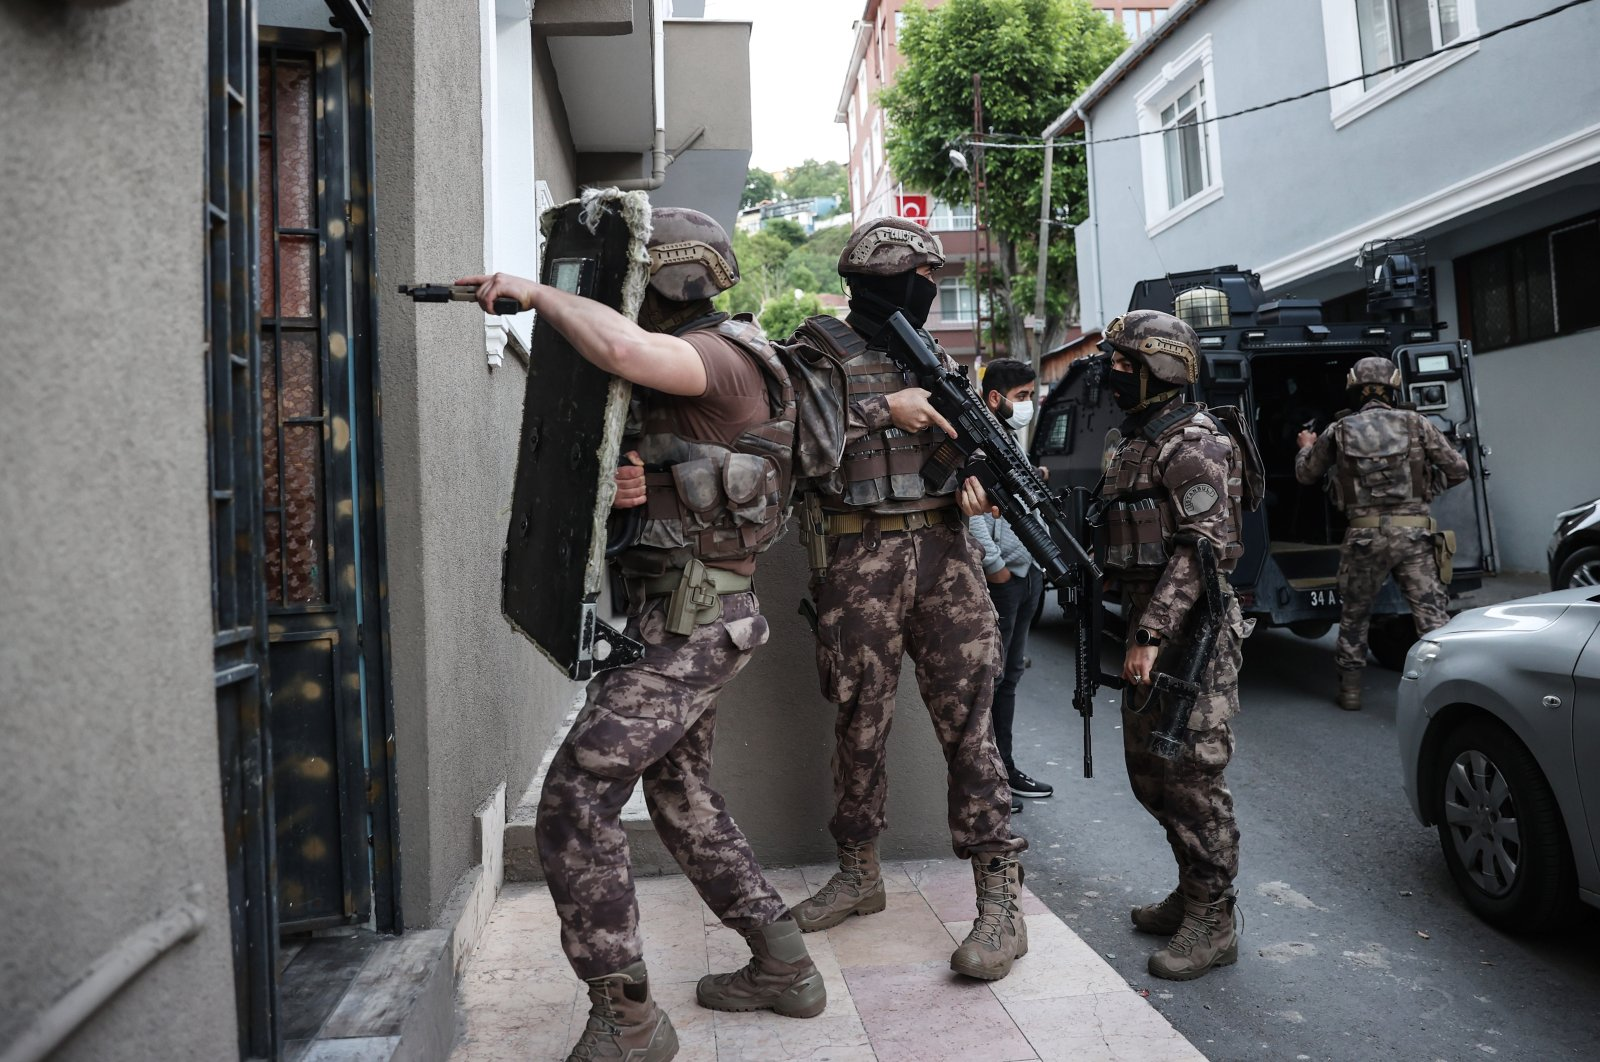 Security forces carry out a counterterrorism operation against Daesh in Istanbul, arresting 18 foreign nationals, Istanbul, Turkey, May 20, 2021 (AA Photo)